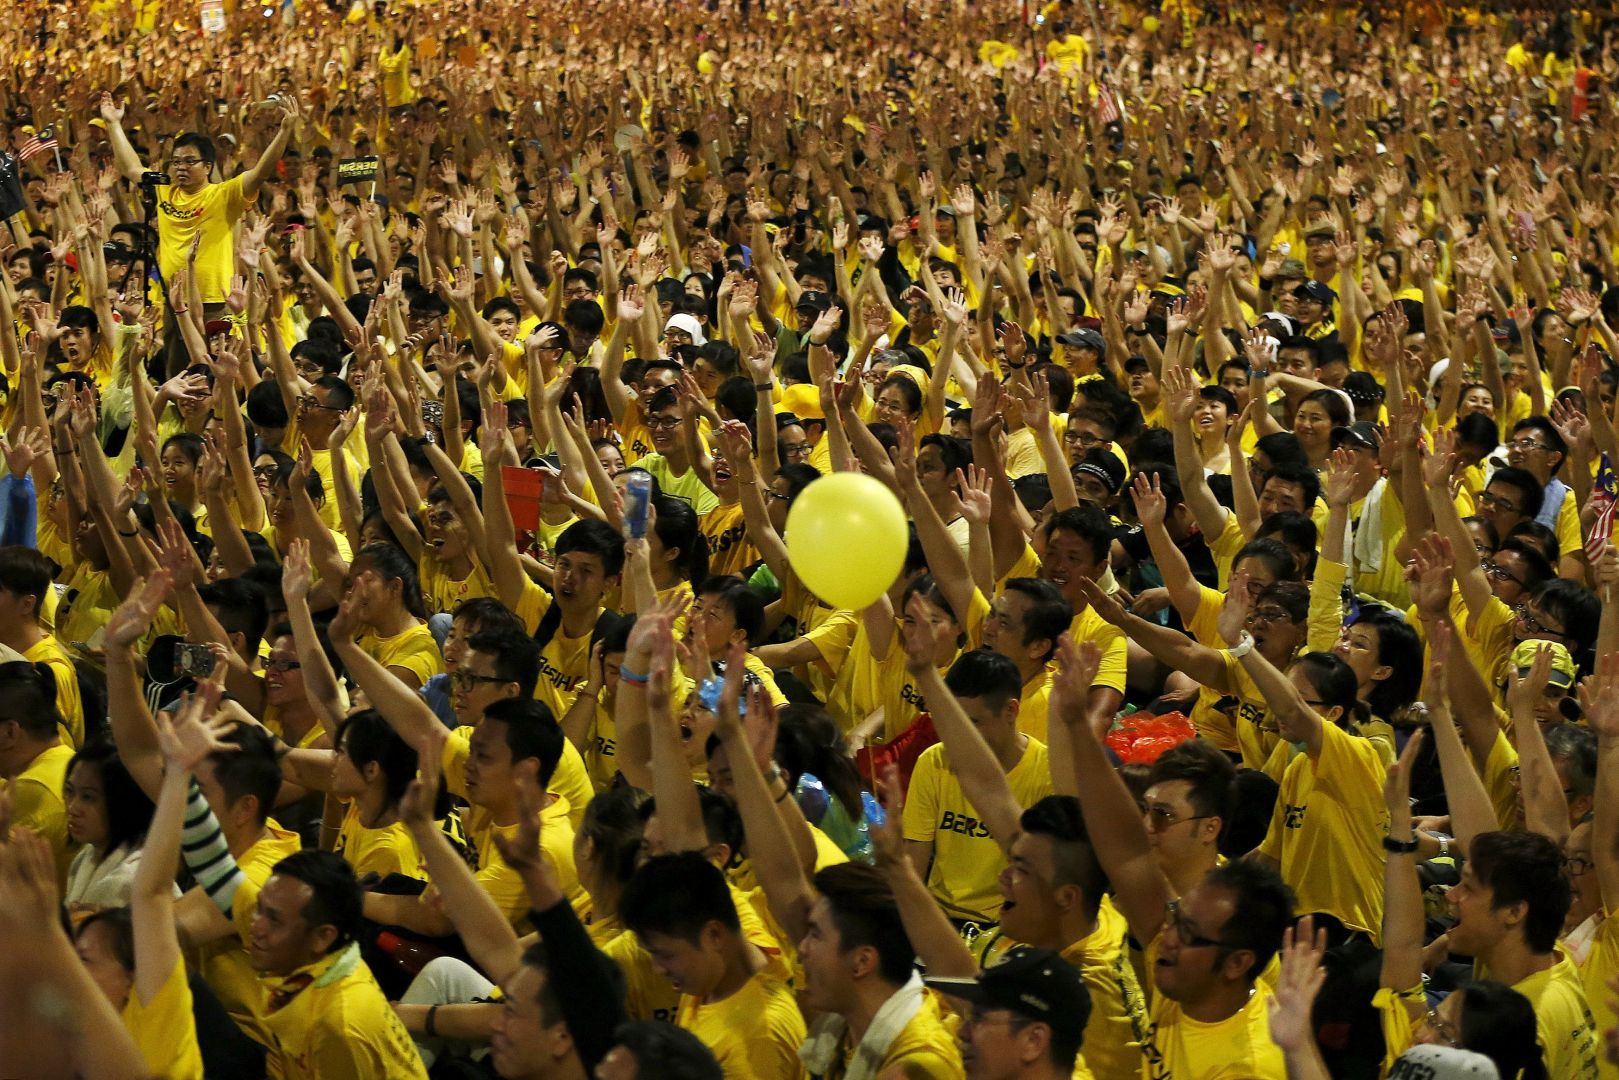 Bersih 5.0 on a Global Scale